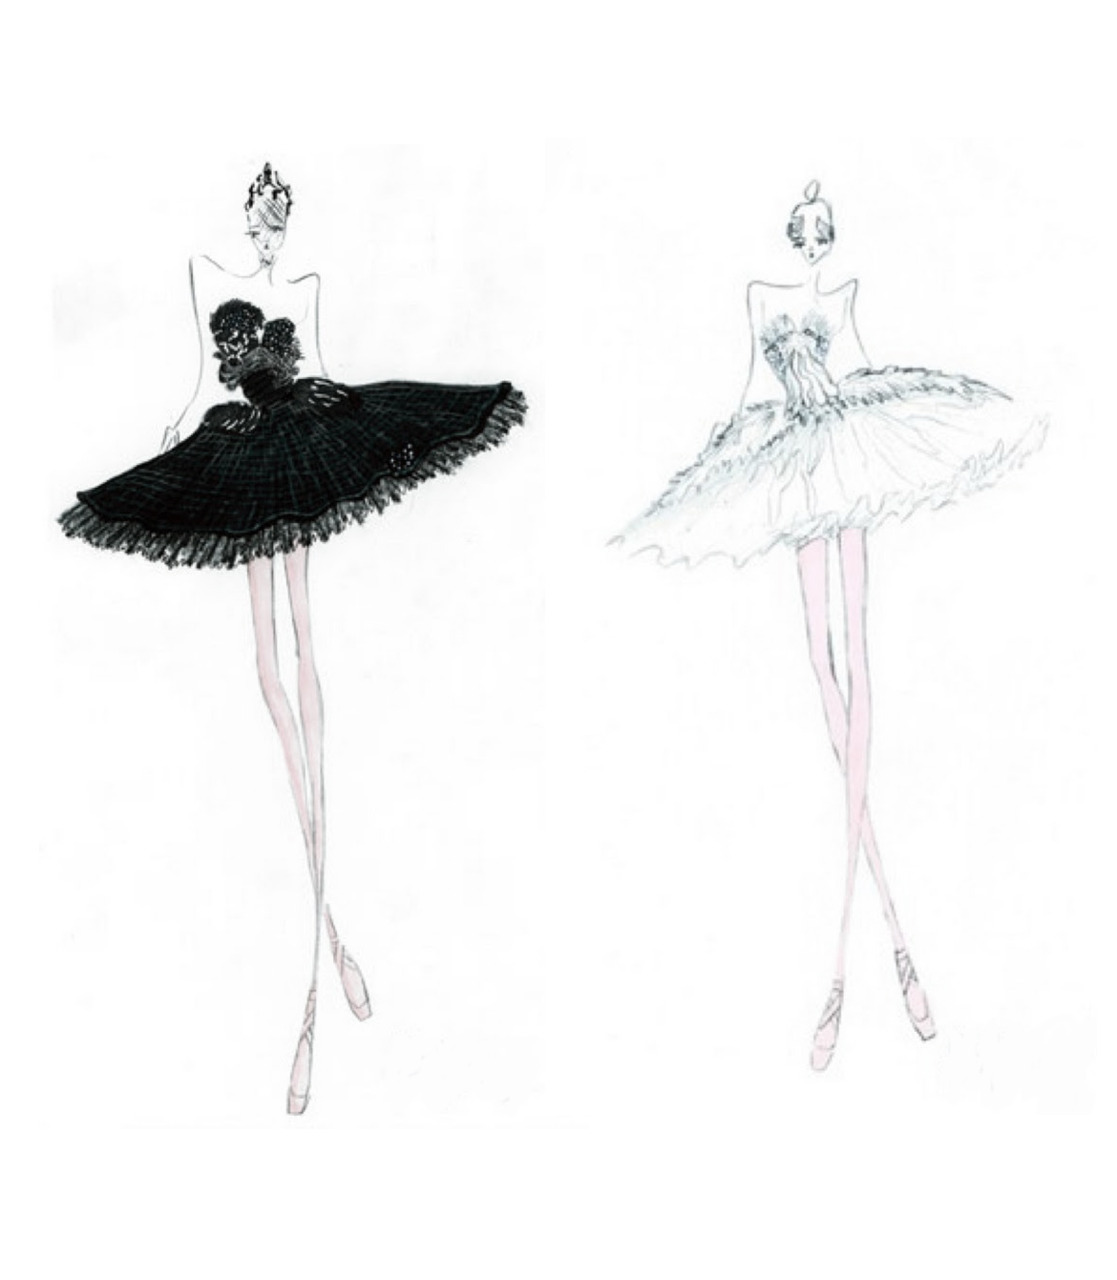 ballerina, ballerines, ballet, black swan, drawing